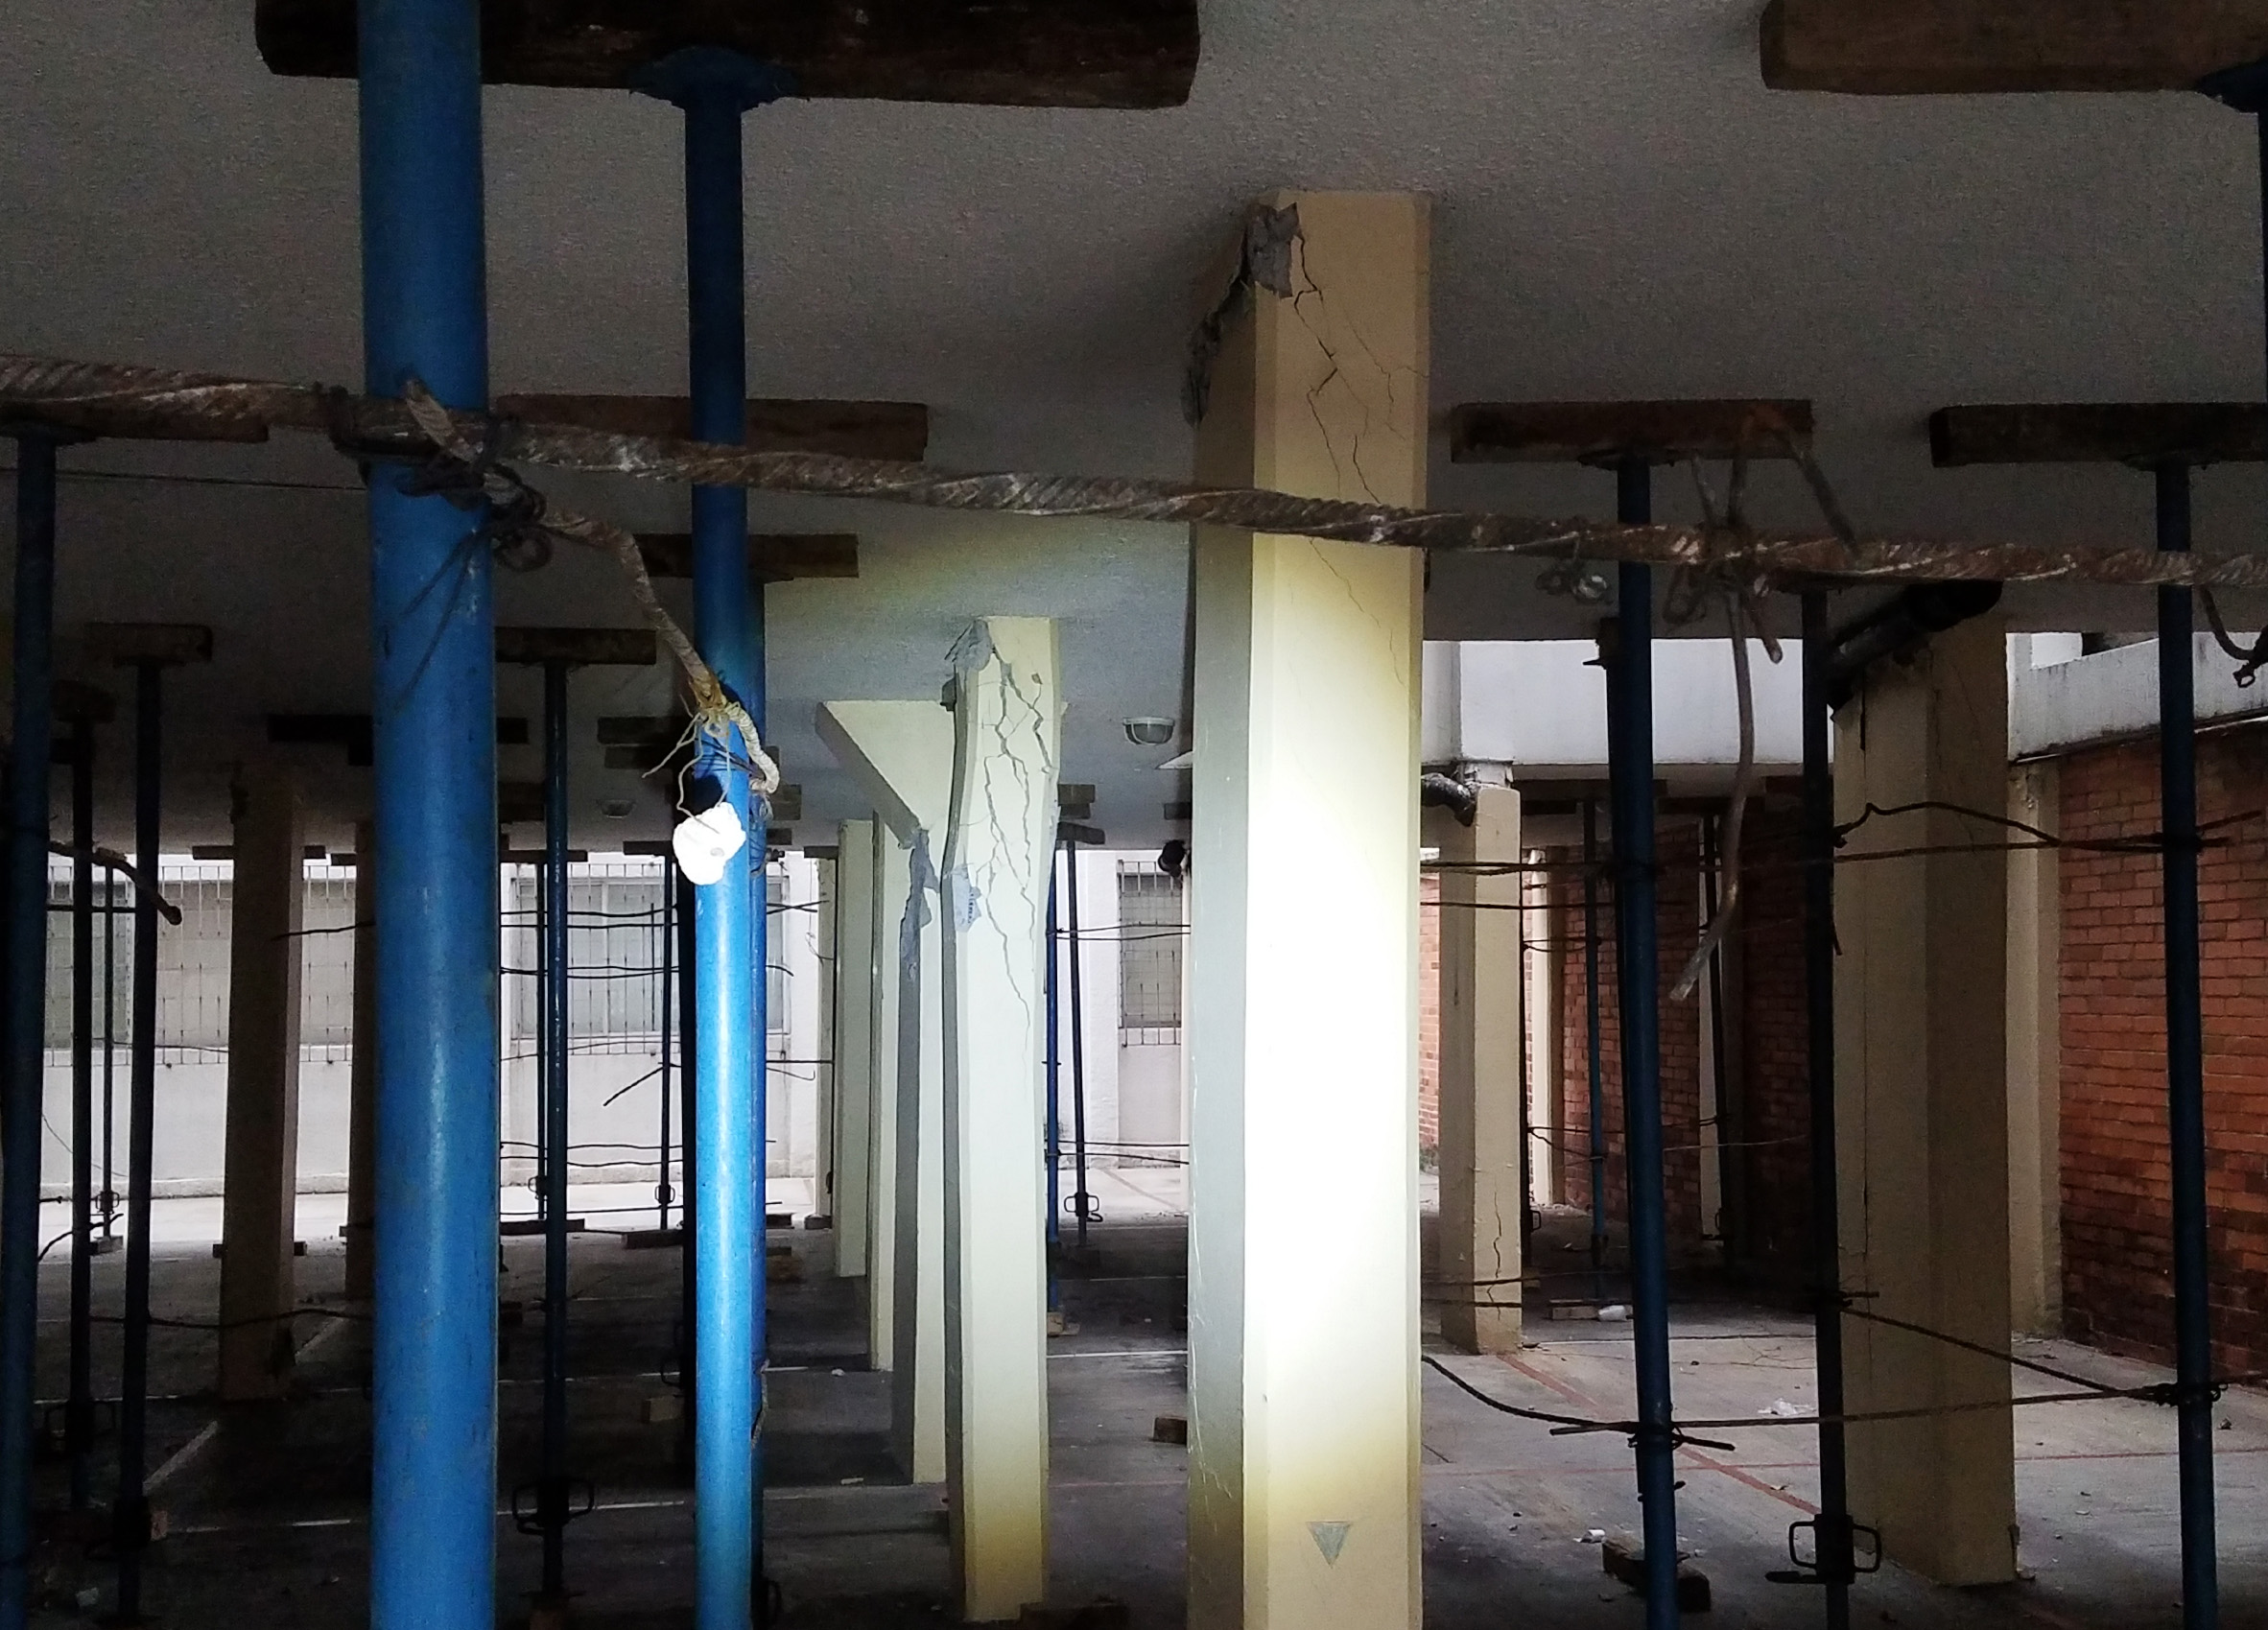 The failure of buckled first floor columns at 609 Calle Azores, Mexico City, MX illuminated by flashlight